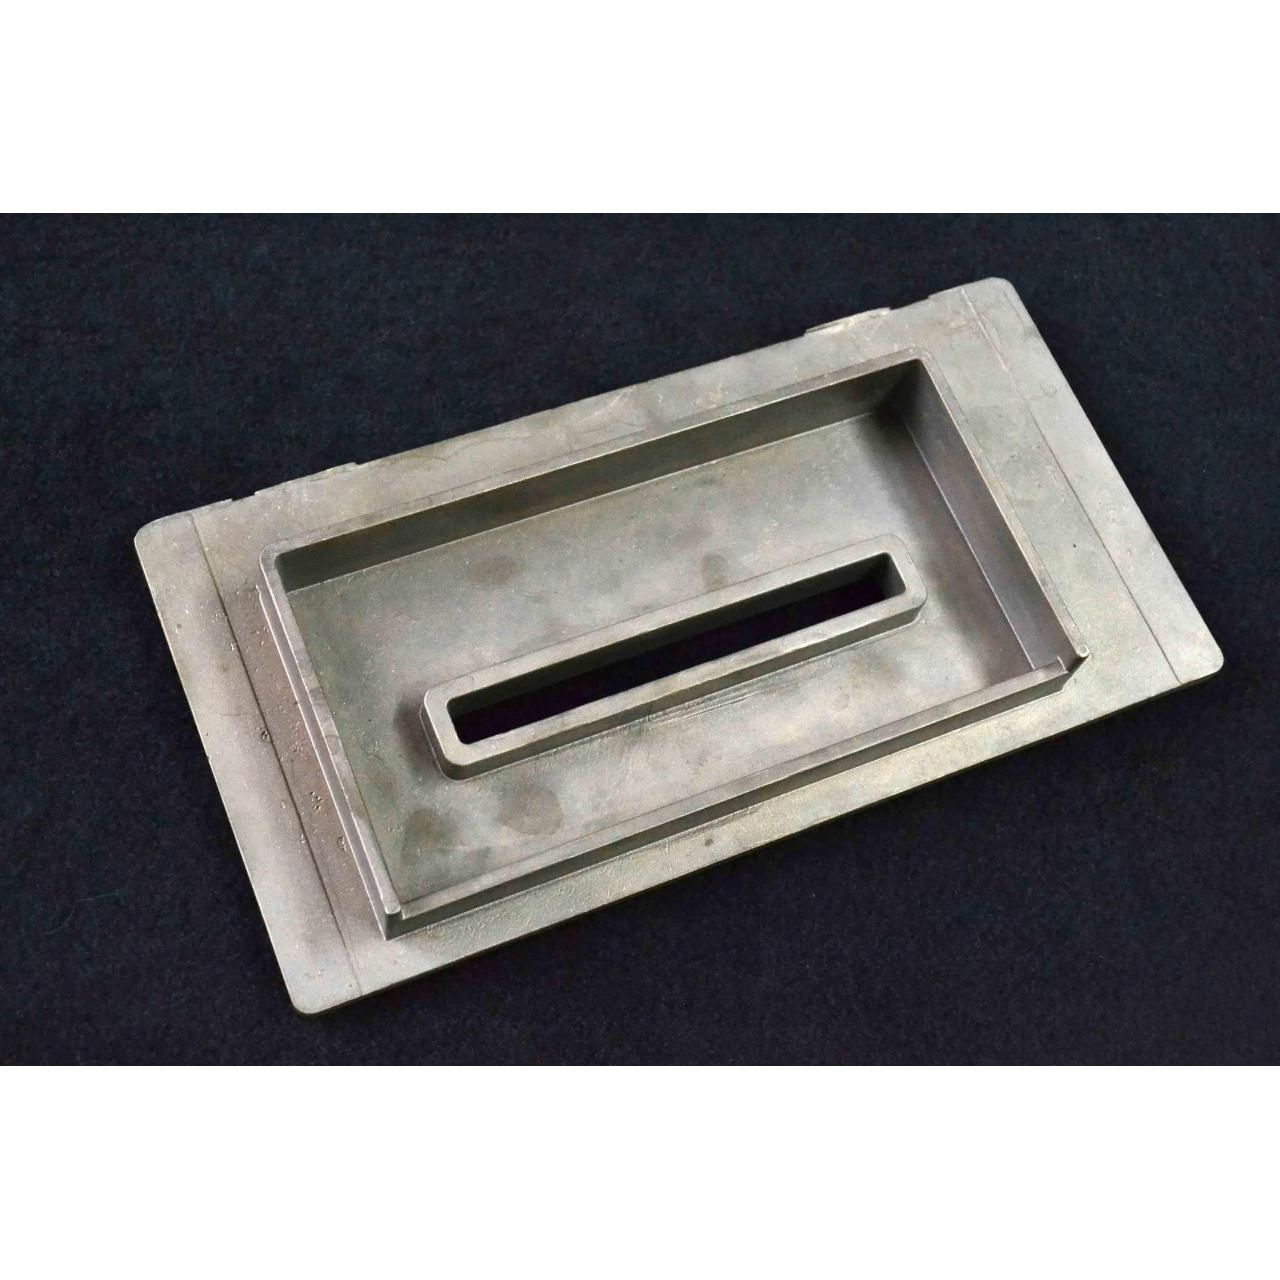 Medical Devices Product name: Medical copper pieces